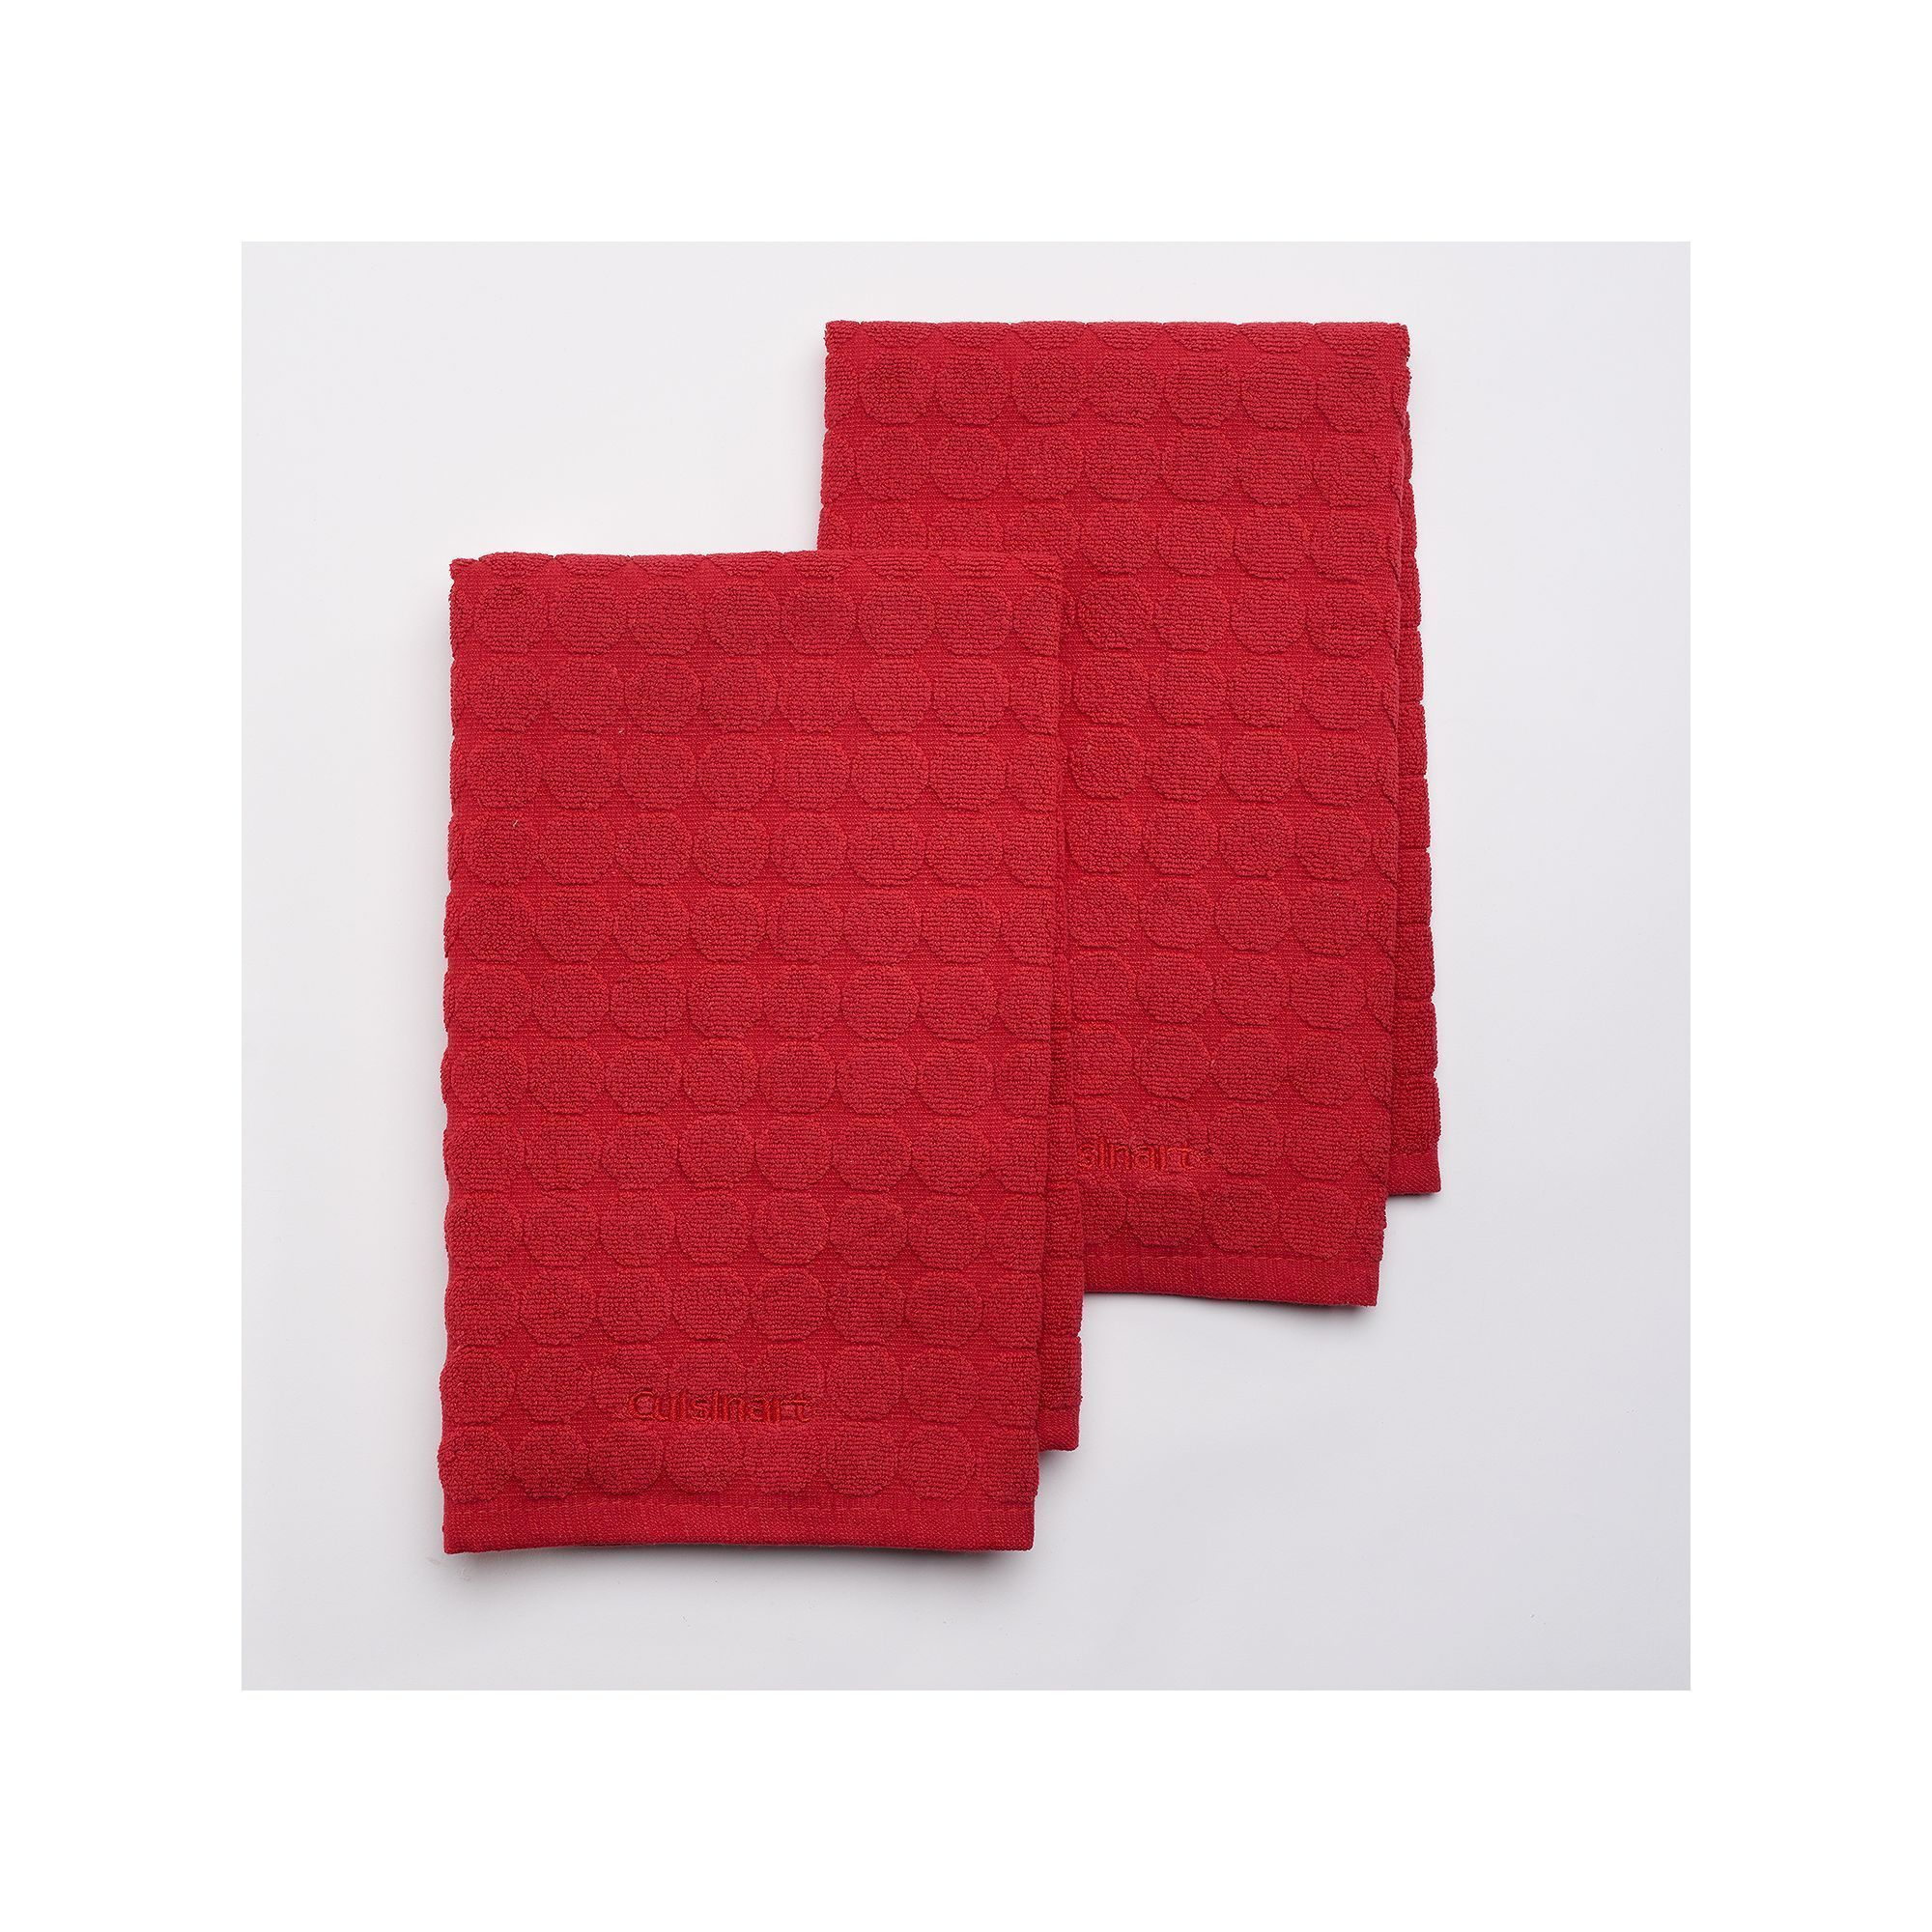 Cuisinart Sculpted Circles 2 Pc Kitchen Towel Set, Red